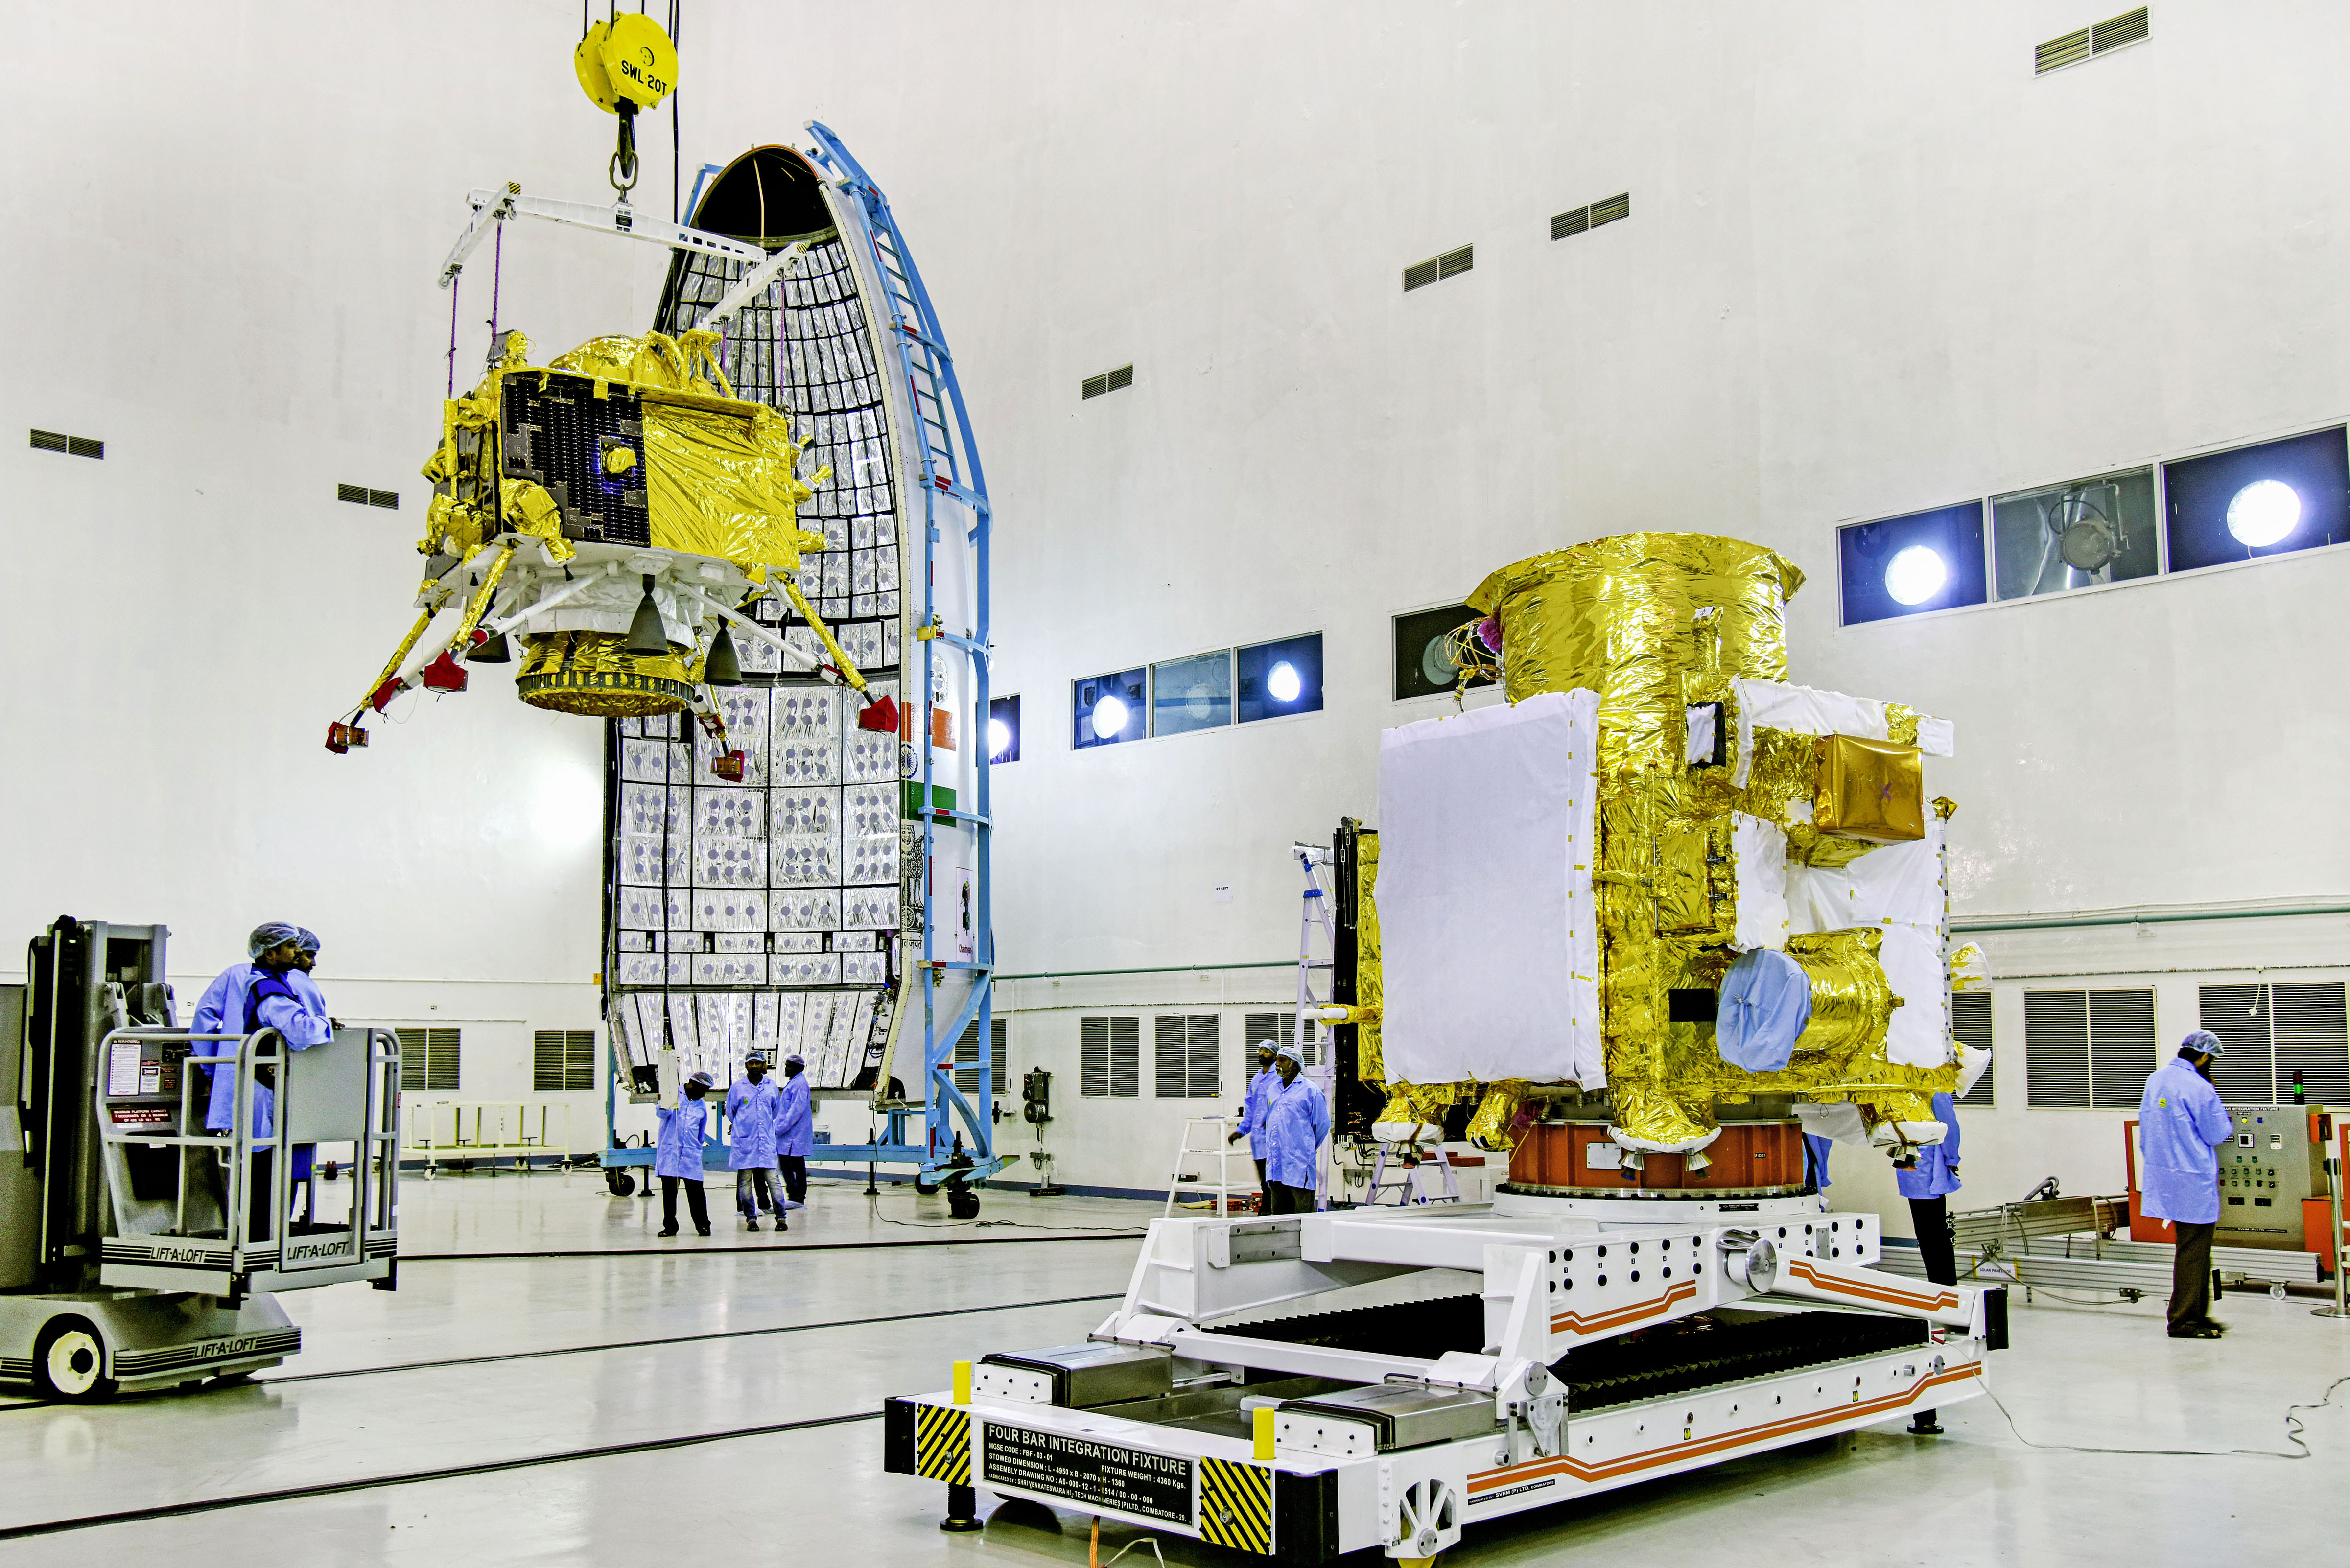 Officials carry out the hoisting of the Vikram Lander during the integration of Chandrayaan-2, at the launch center in Sriharikota on Thursday, July 11, 2019